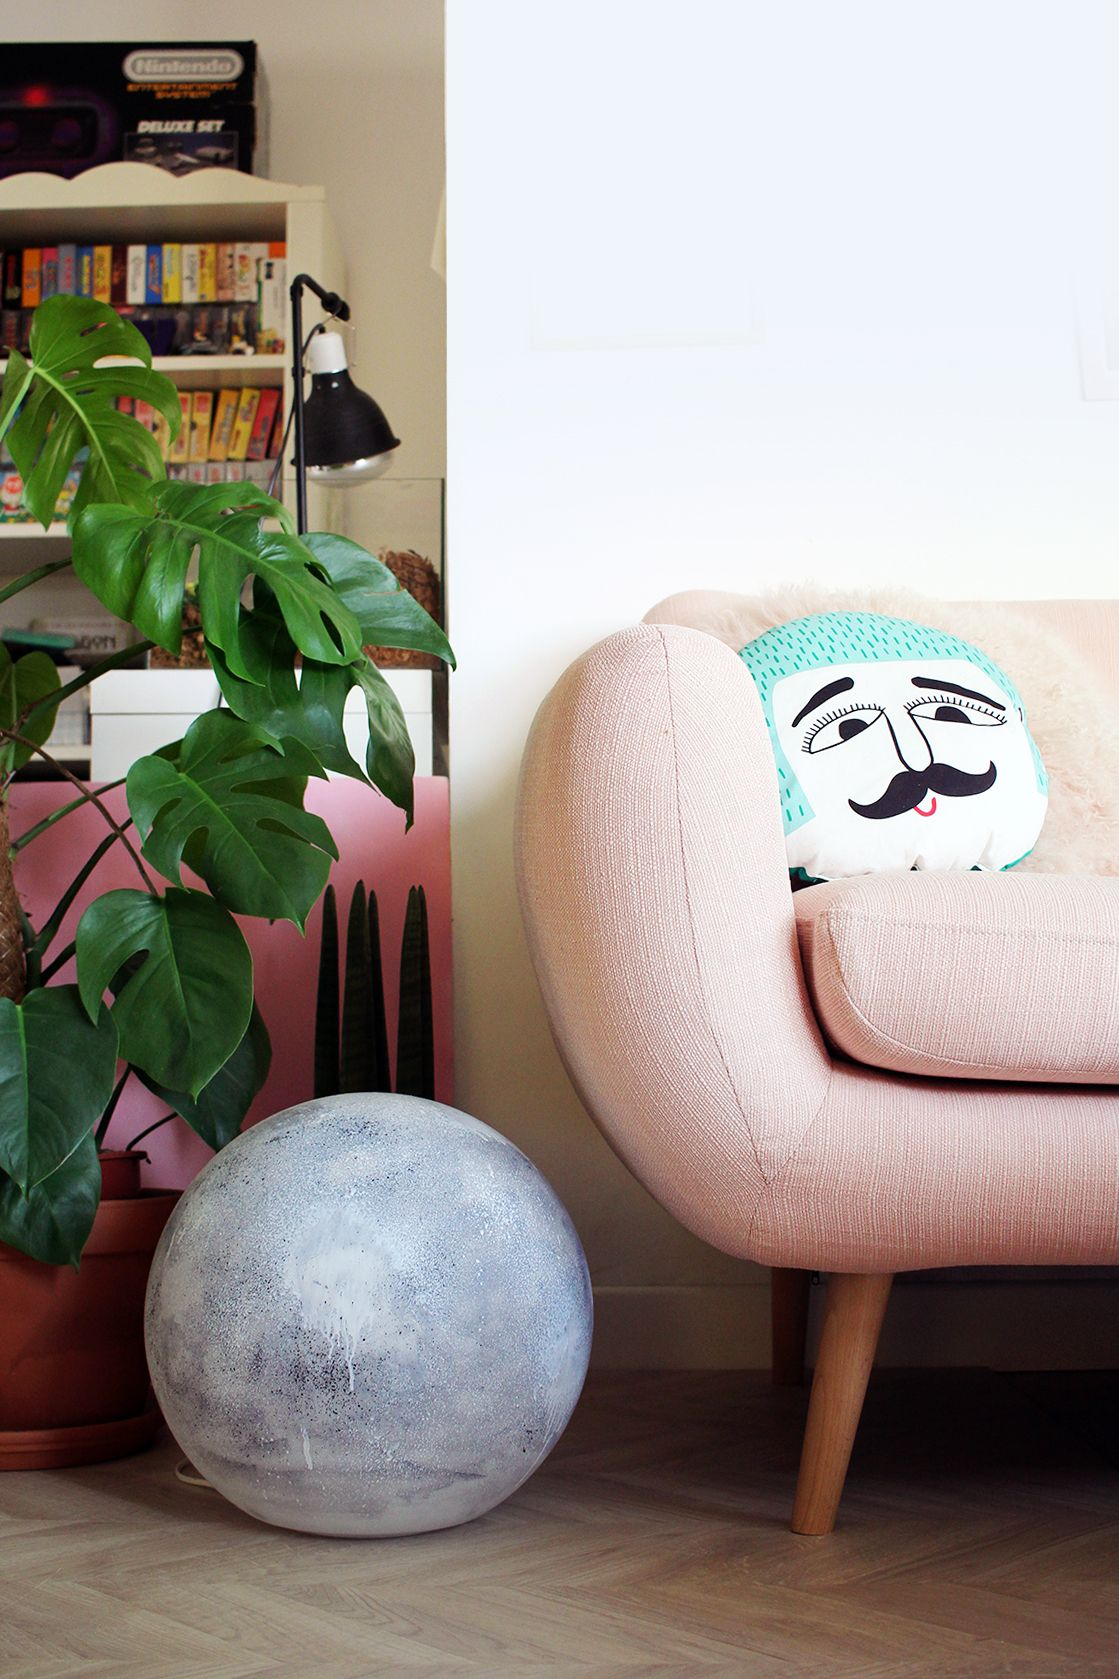 Astuces Deco A Faire Soi Meme Diy La Lampe Moon Diy Dreams Diy Home Decor Inspiration Et